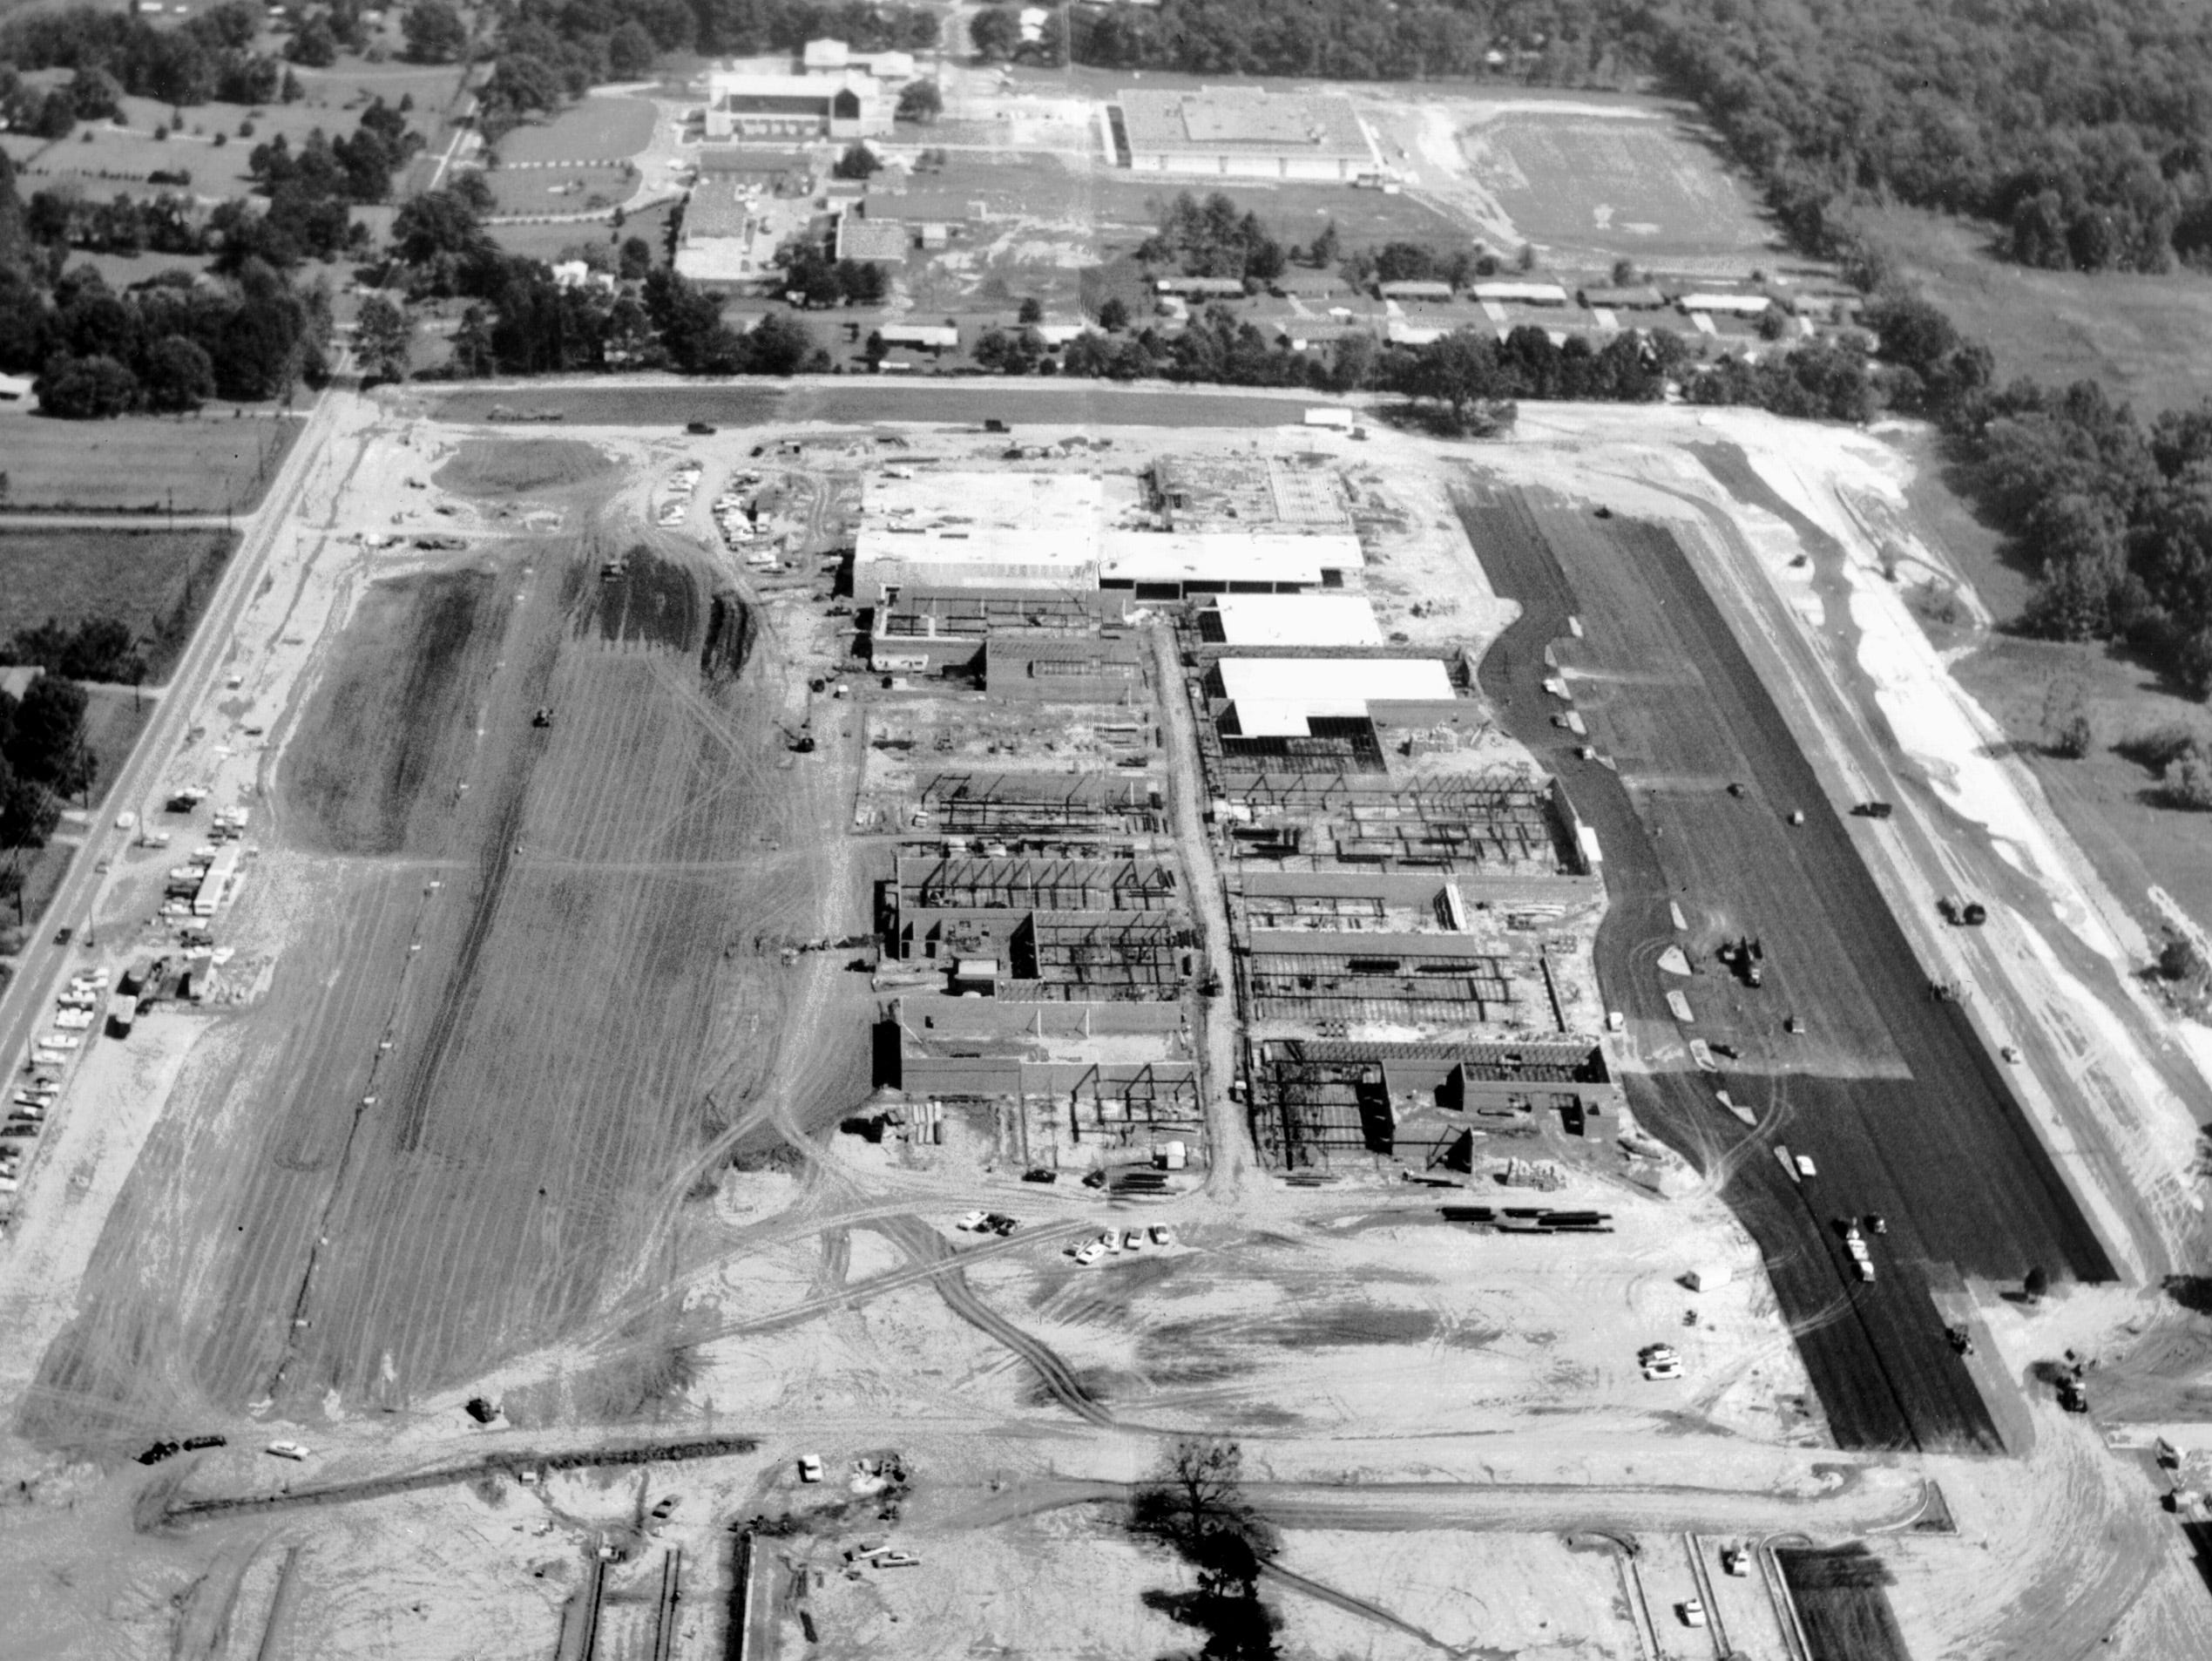 Southland Mall was rising out of the Whitehaven landscape in fall 1965 as seen in this photograph on Oct. 25 of that year. Shelby Drive runs top to bottom at far left, and U.S. 51 moves left to right at extreme bottom of photograph.